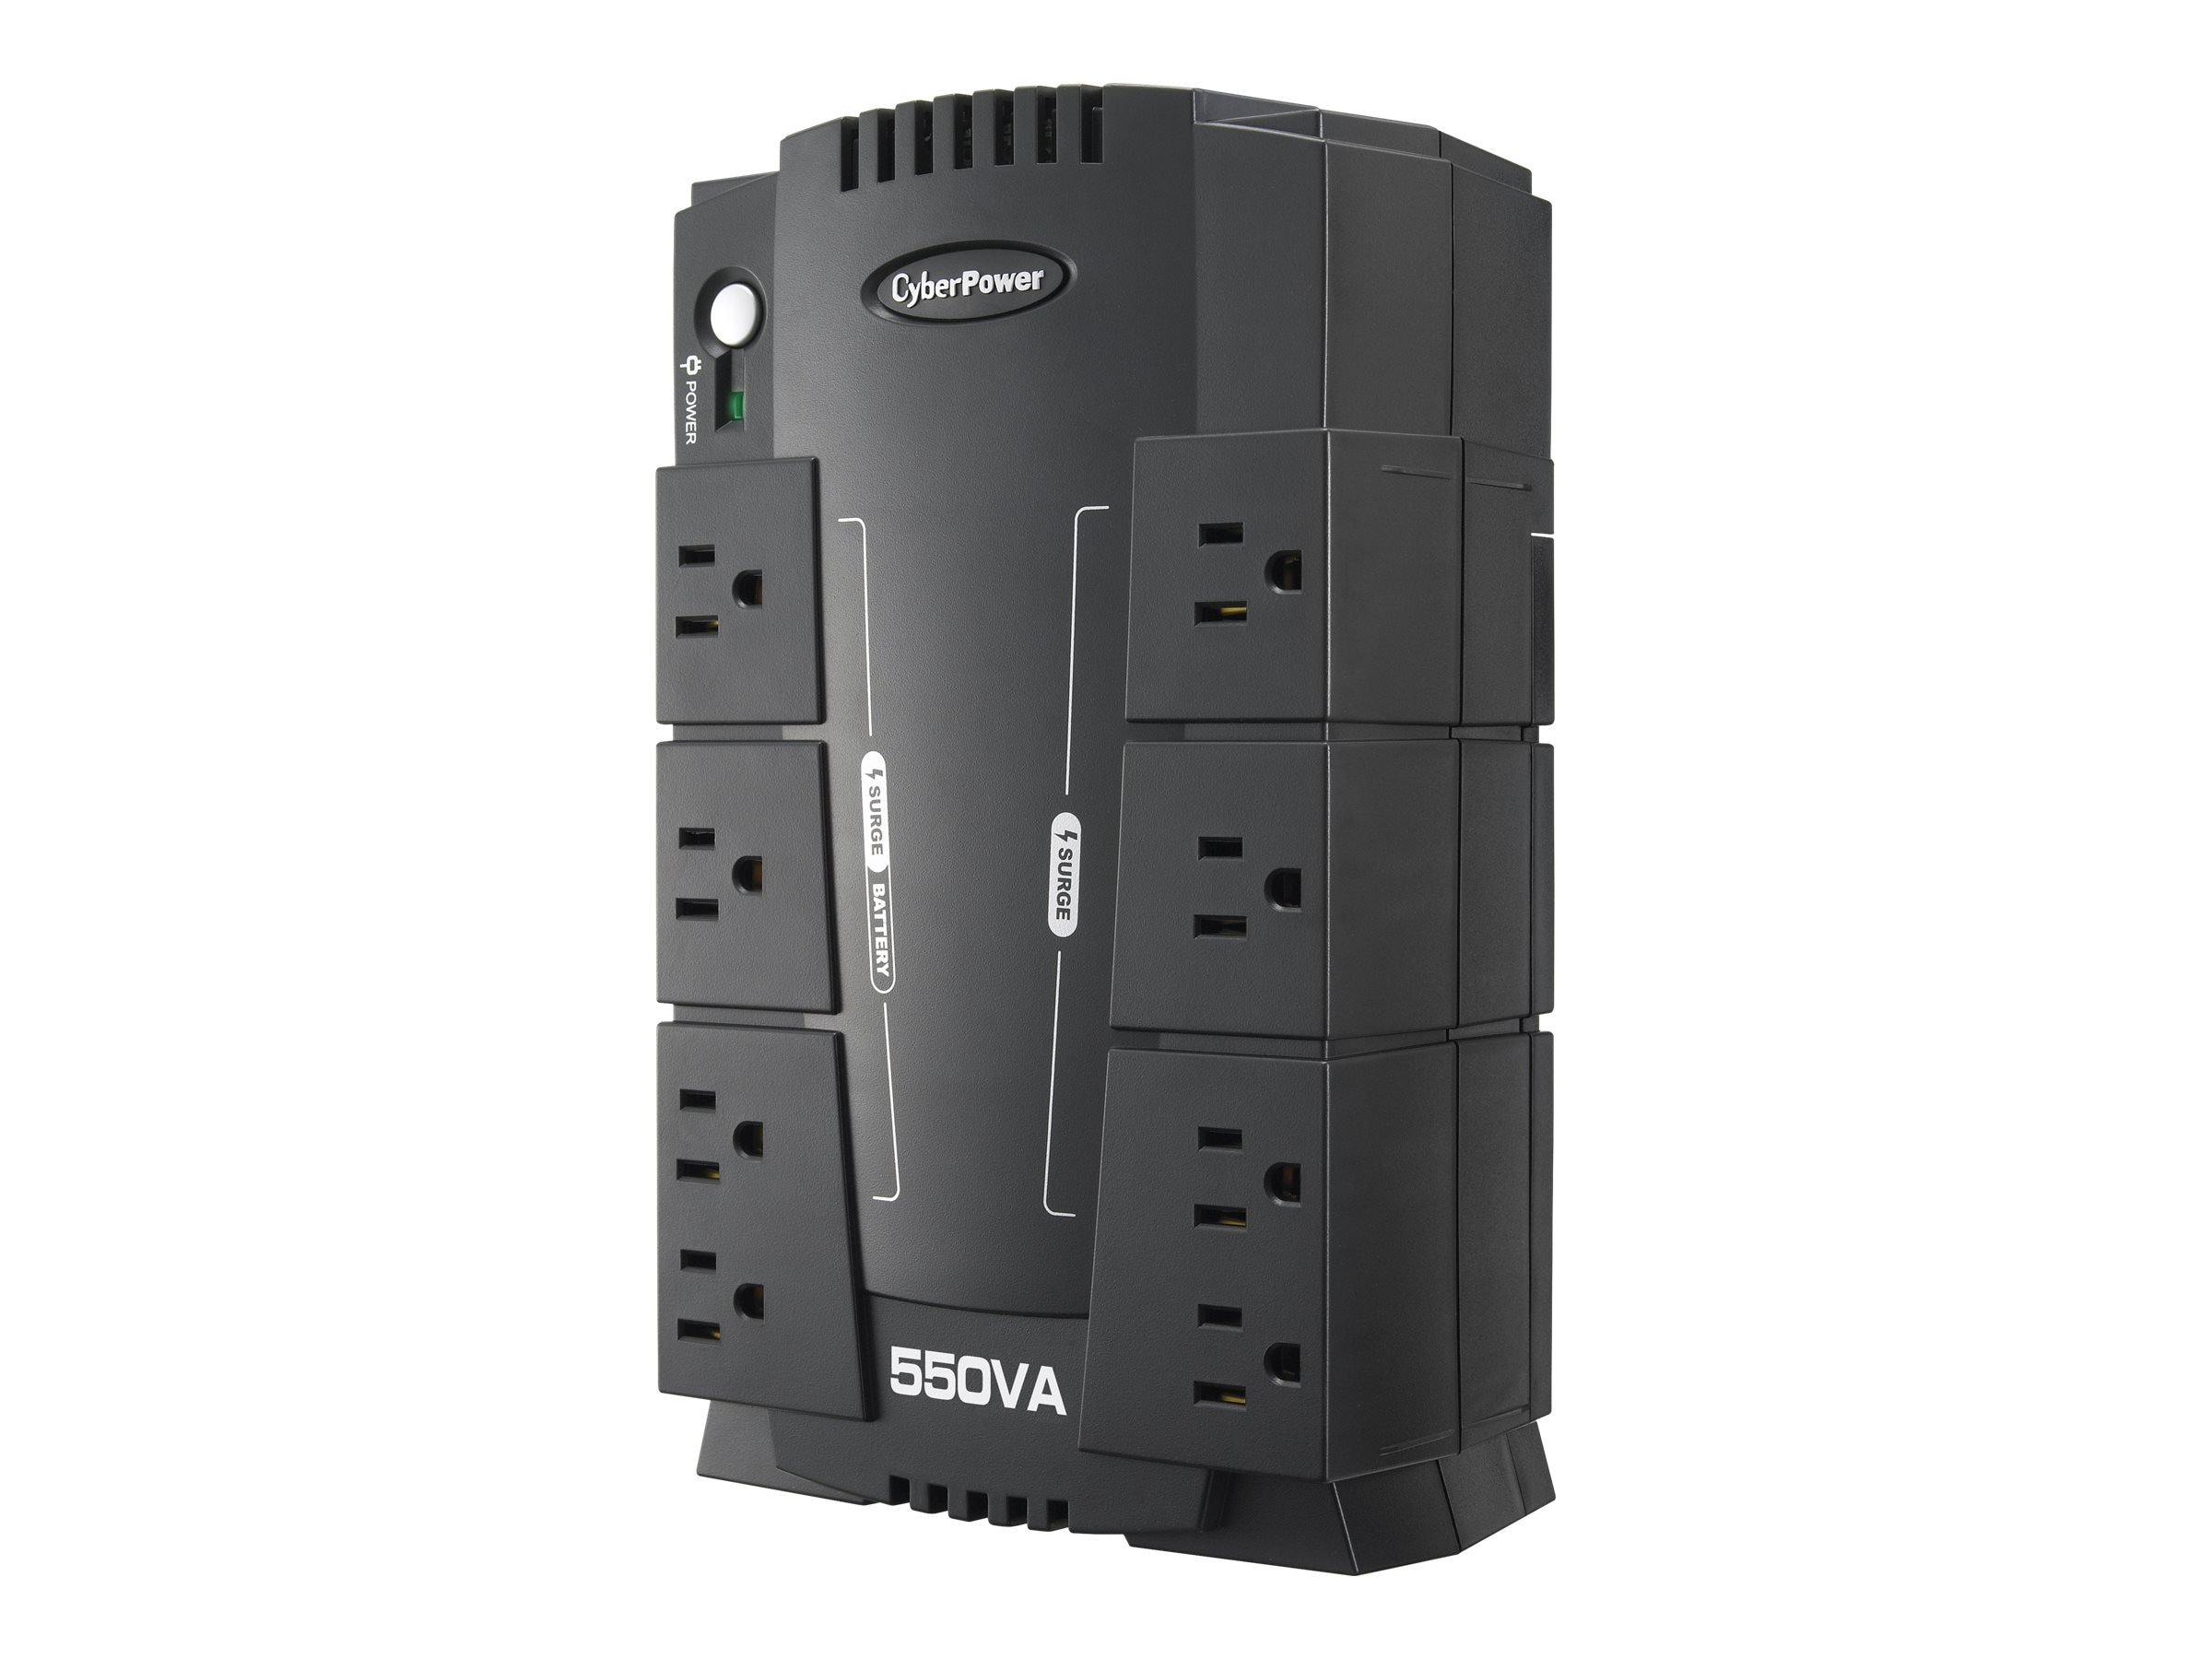 CyberPower 550VA Standby Green UPS (8) 5-15R Outlets USB, Management Software, CP550SLG, 10896331, Battery Backup/UPS